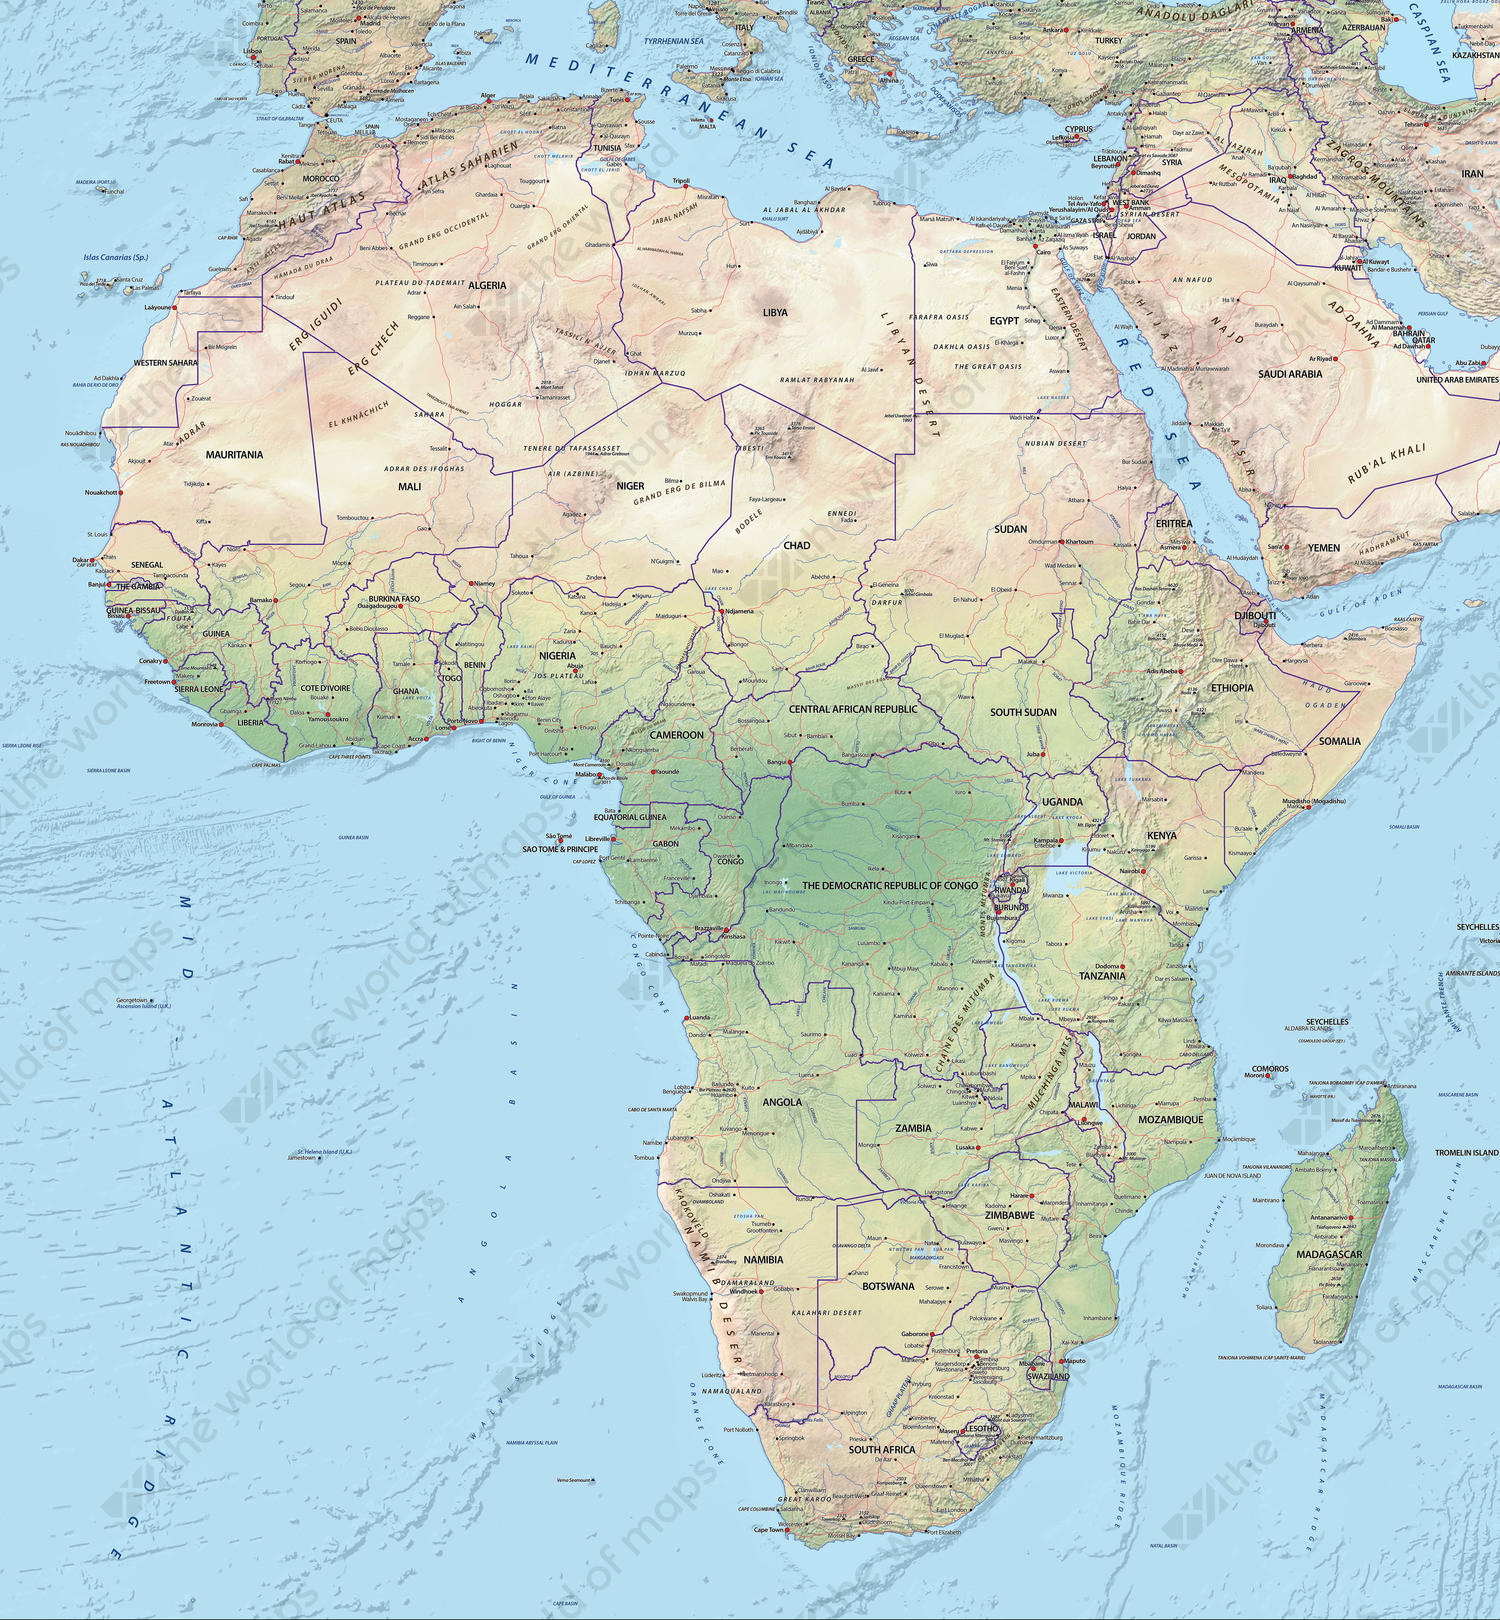 Map Of Africa Physical.Digital Map Africa Physical 628 The World Of Maps Com